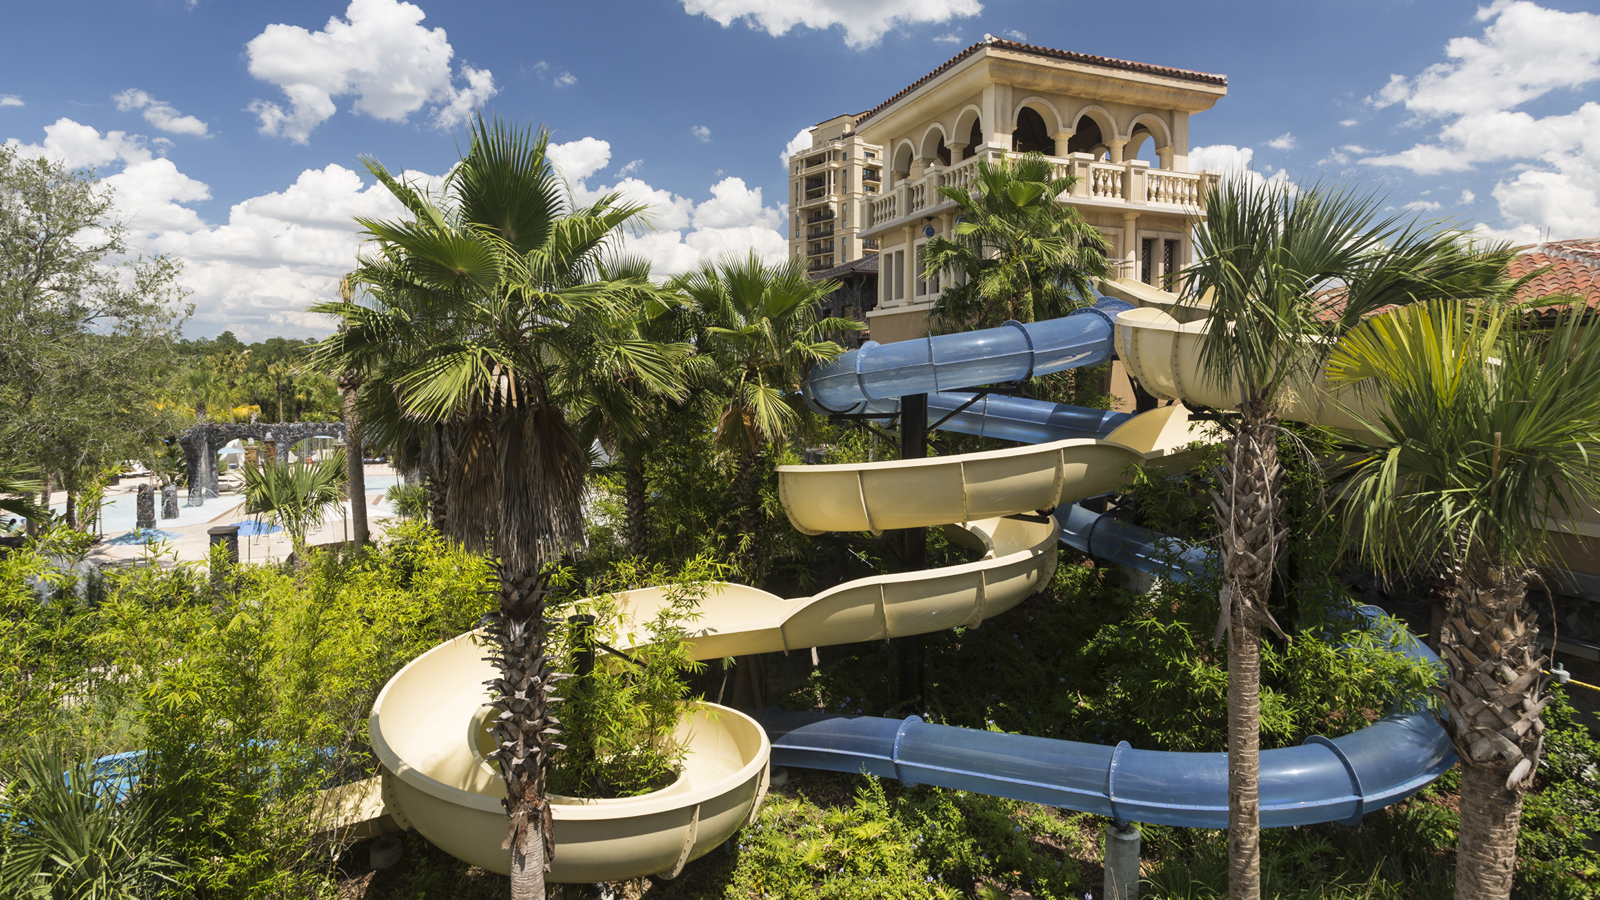 Top Florida Family Hotels By Four Seasons Family Vacation Experts Best Kid Friendly Travel